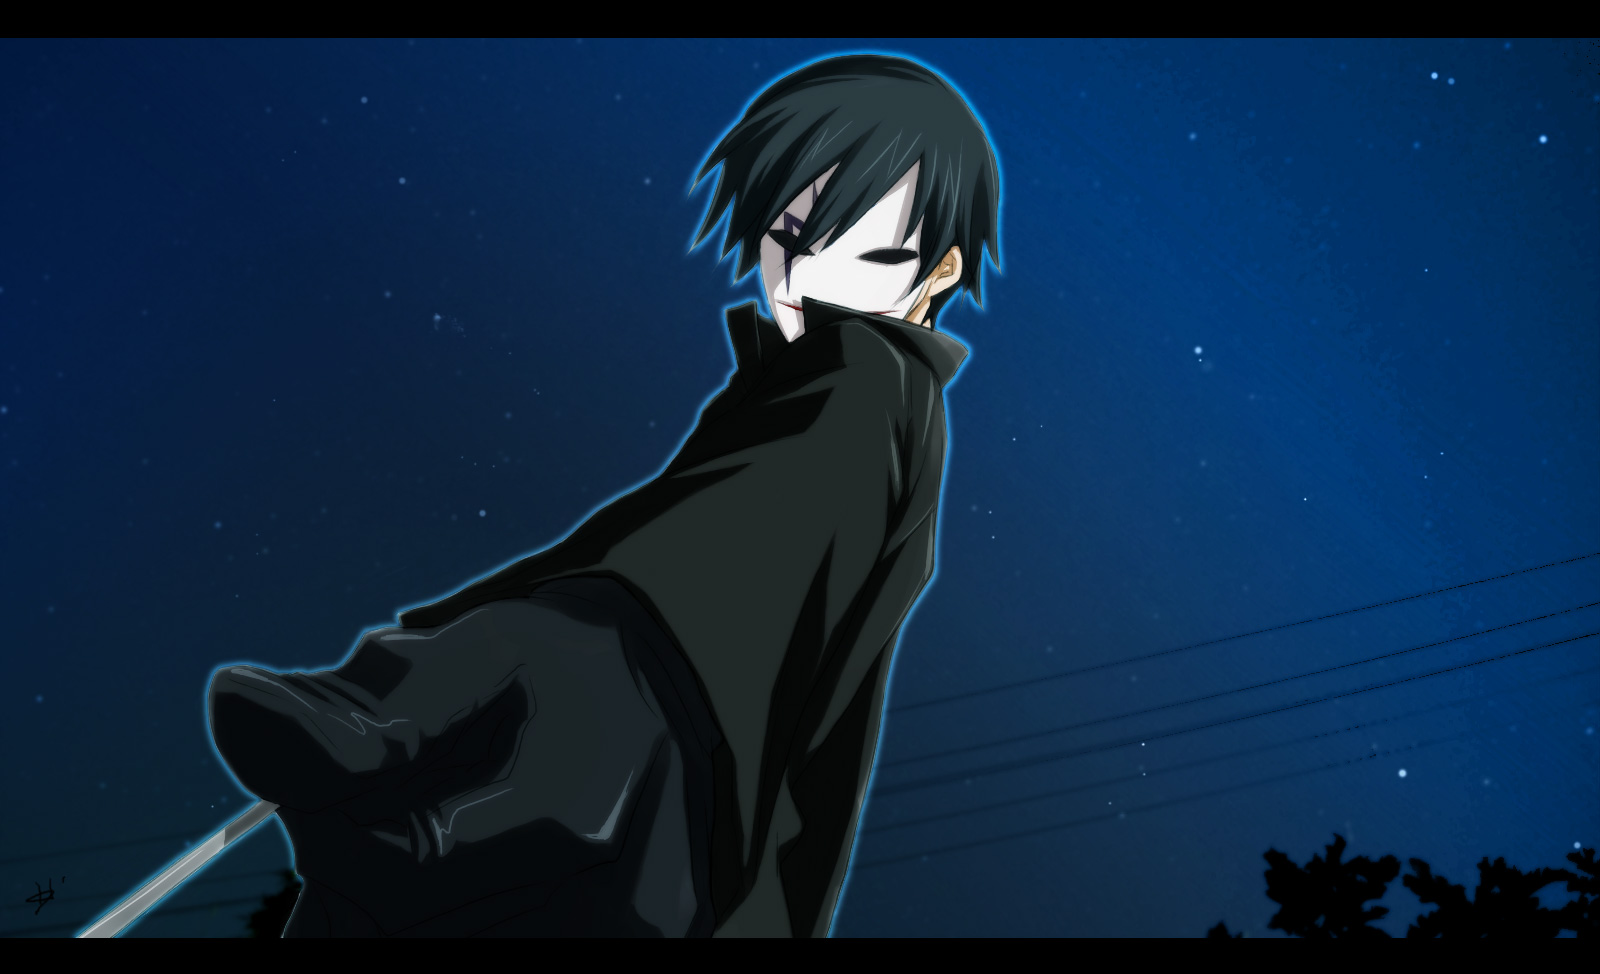 Darker Than Black Wallpaper 1156893 Zerochan Anime Image Board